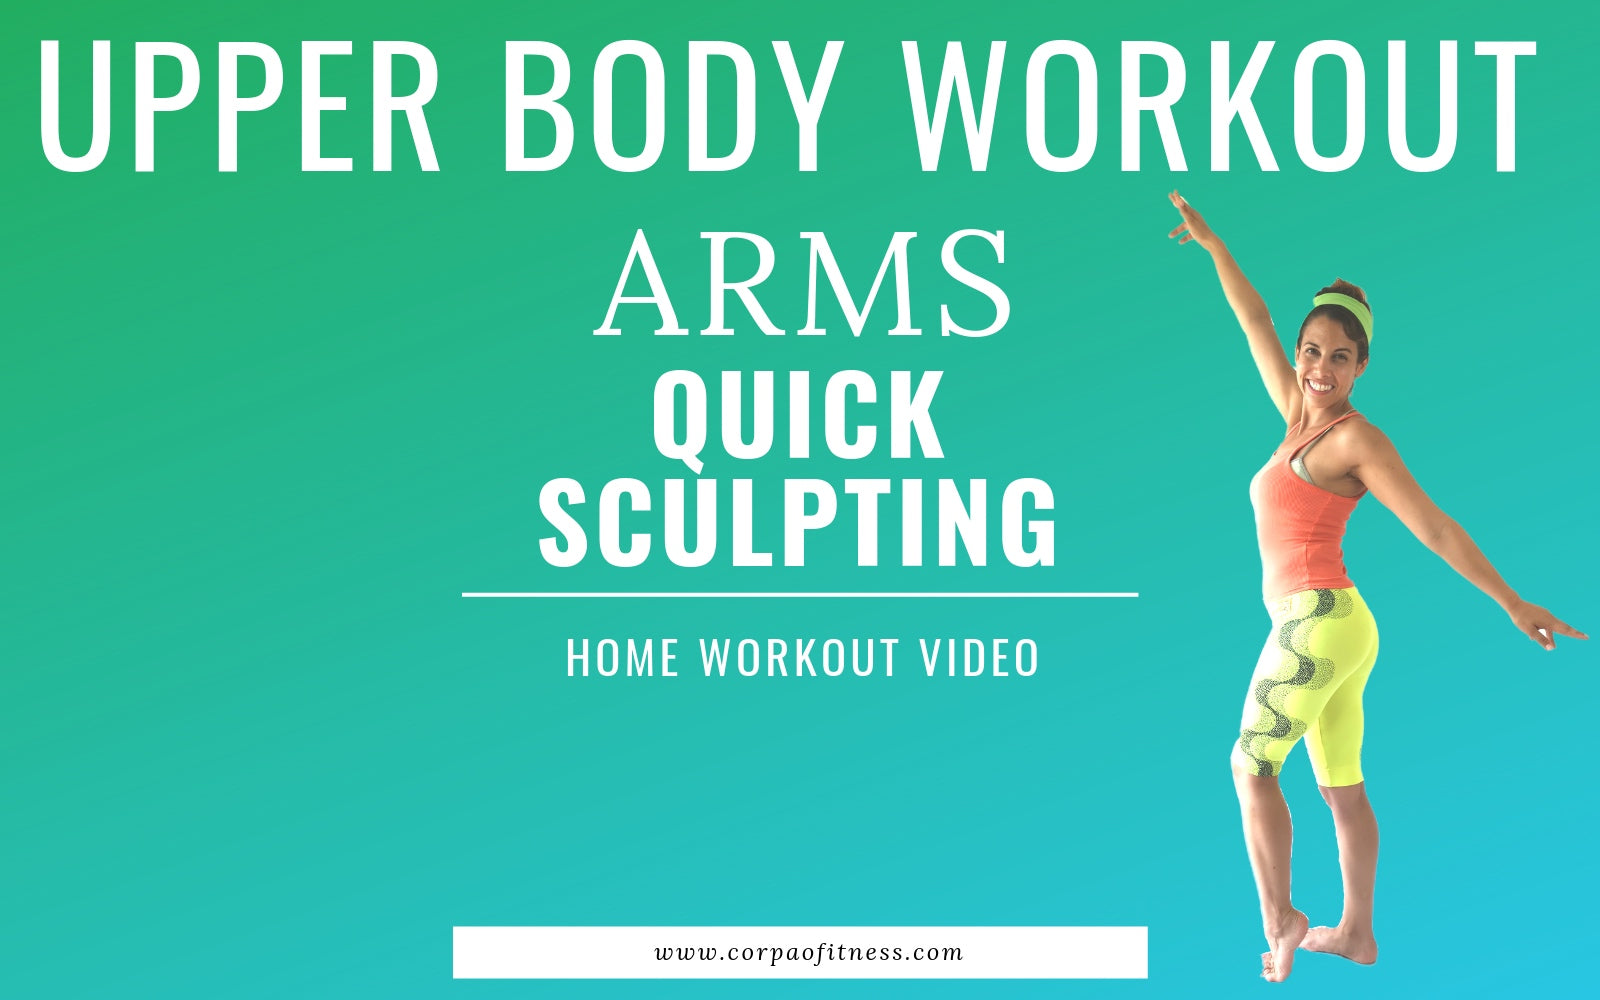 Arm Workout For Women | Sexy Arms in 10 min, no equipment